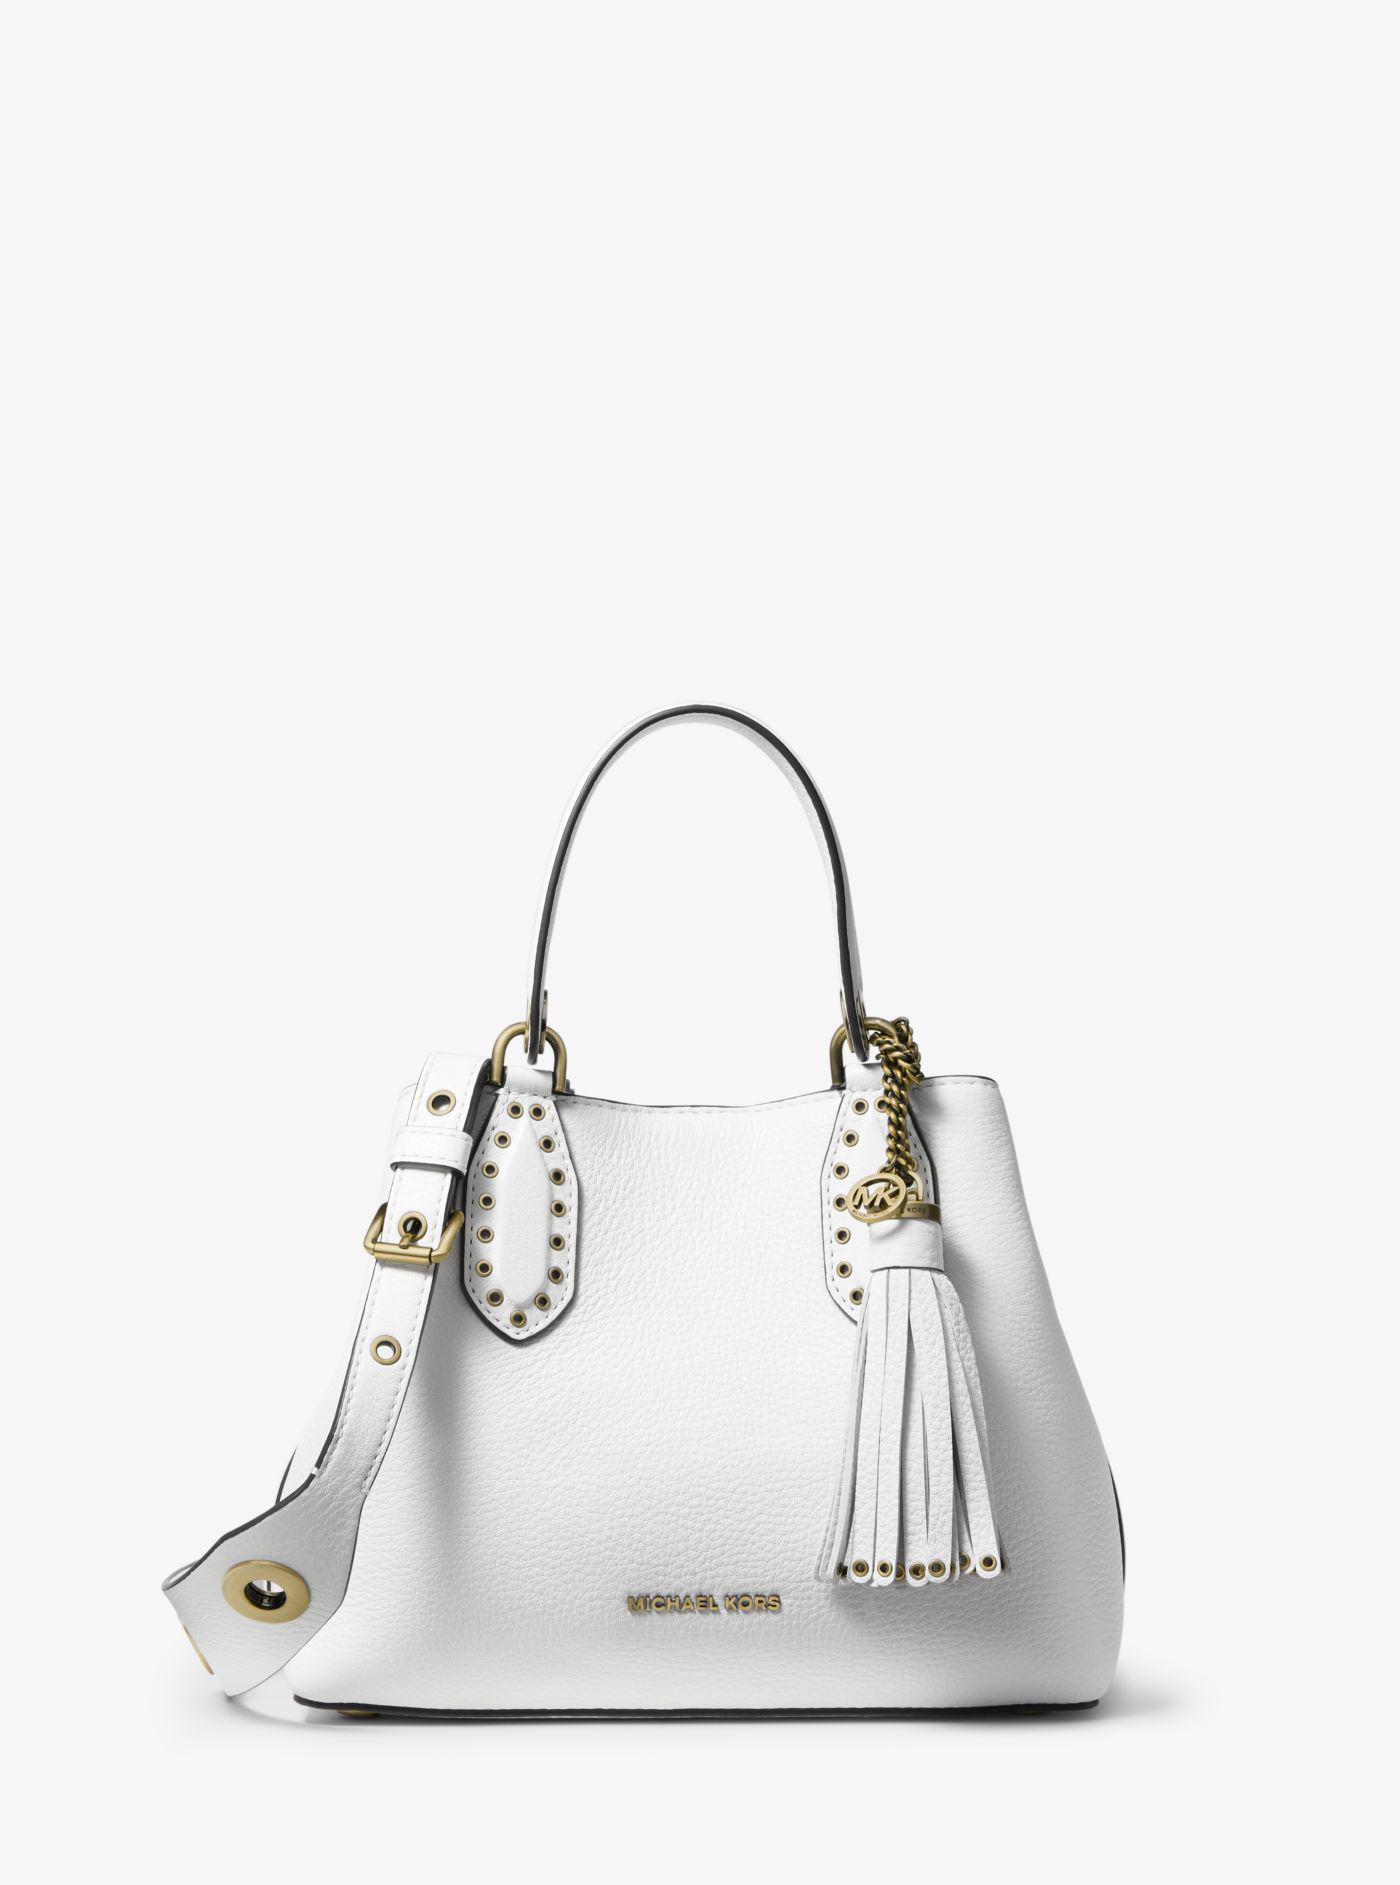 eb7206fdbf47 Michael Kors Brooklyn Small Pebbled Leather Satchel in White - Lyst